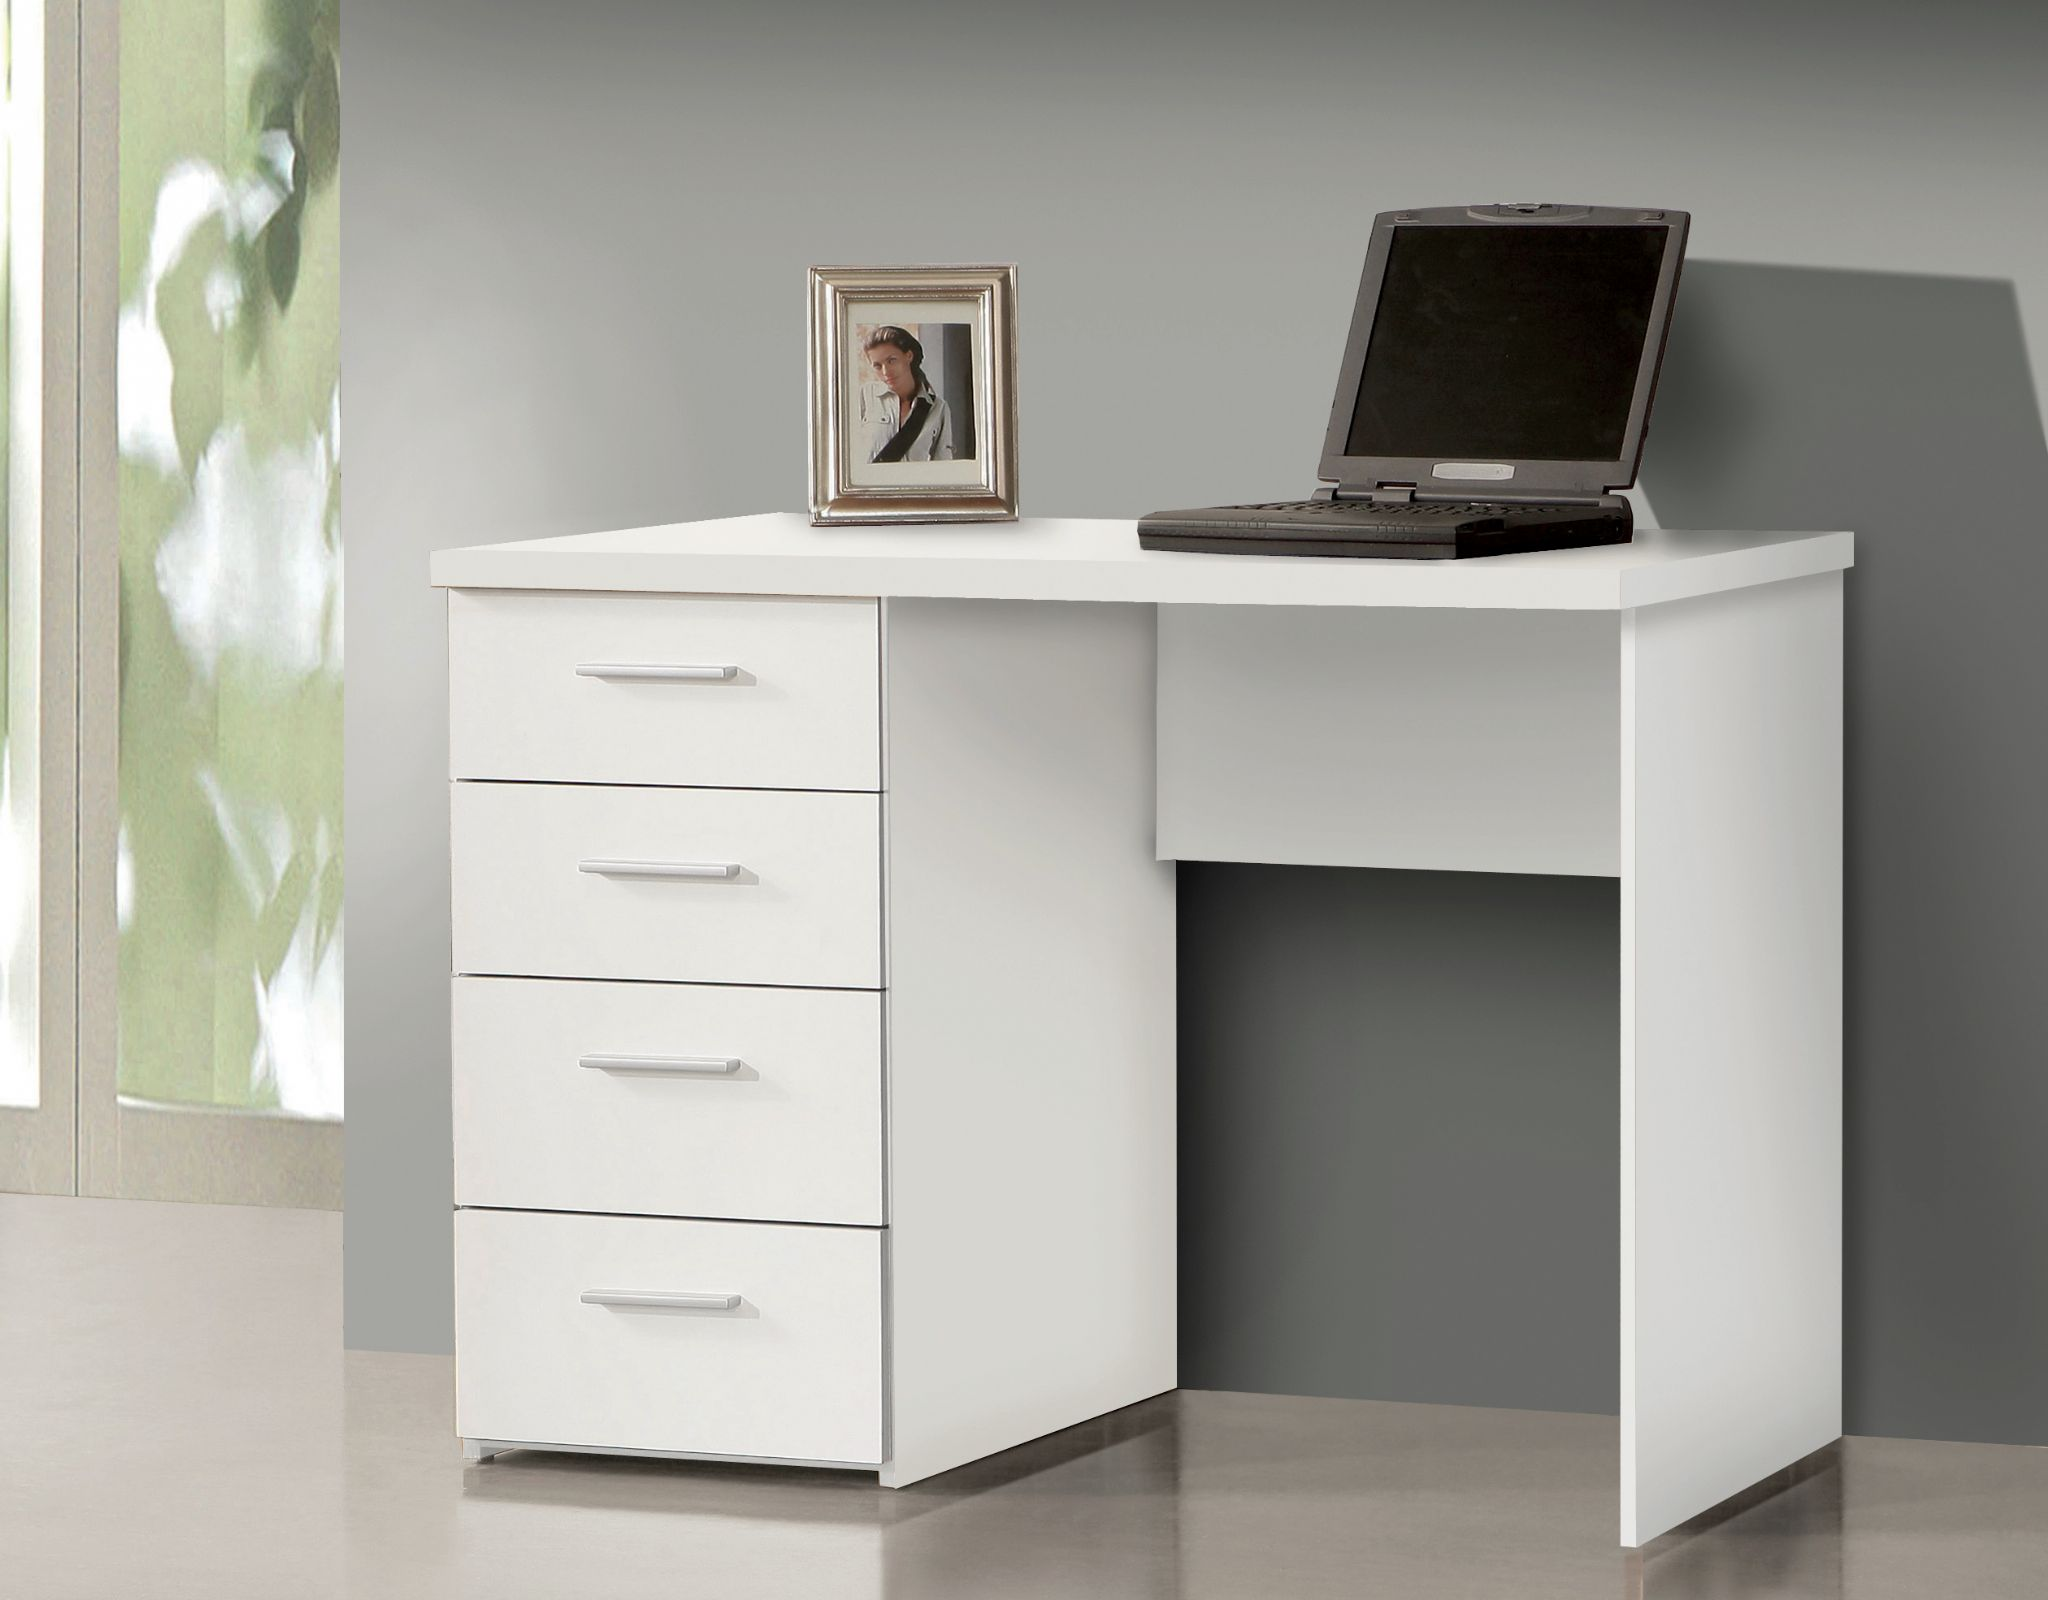 Pulton Simple Small White Desk with Drawers by